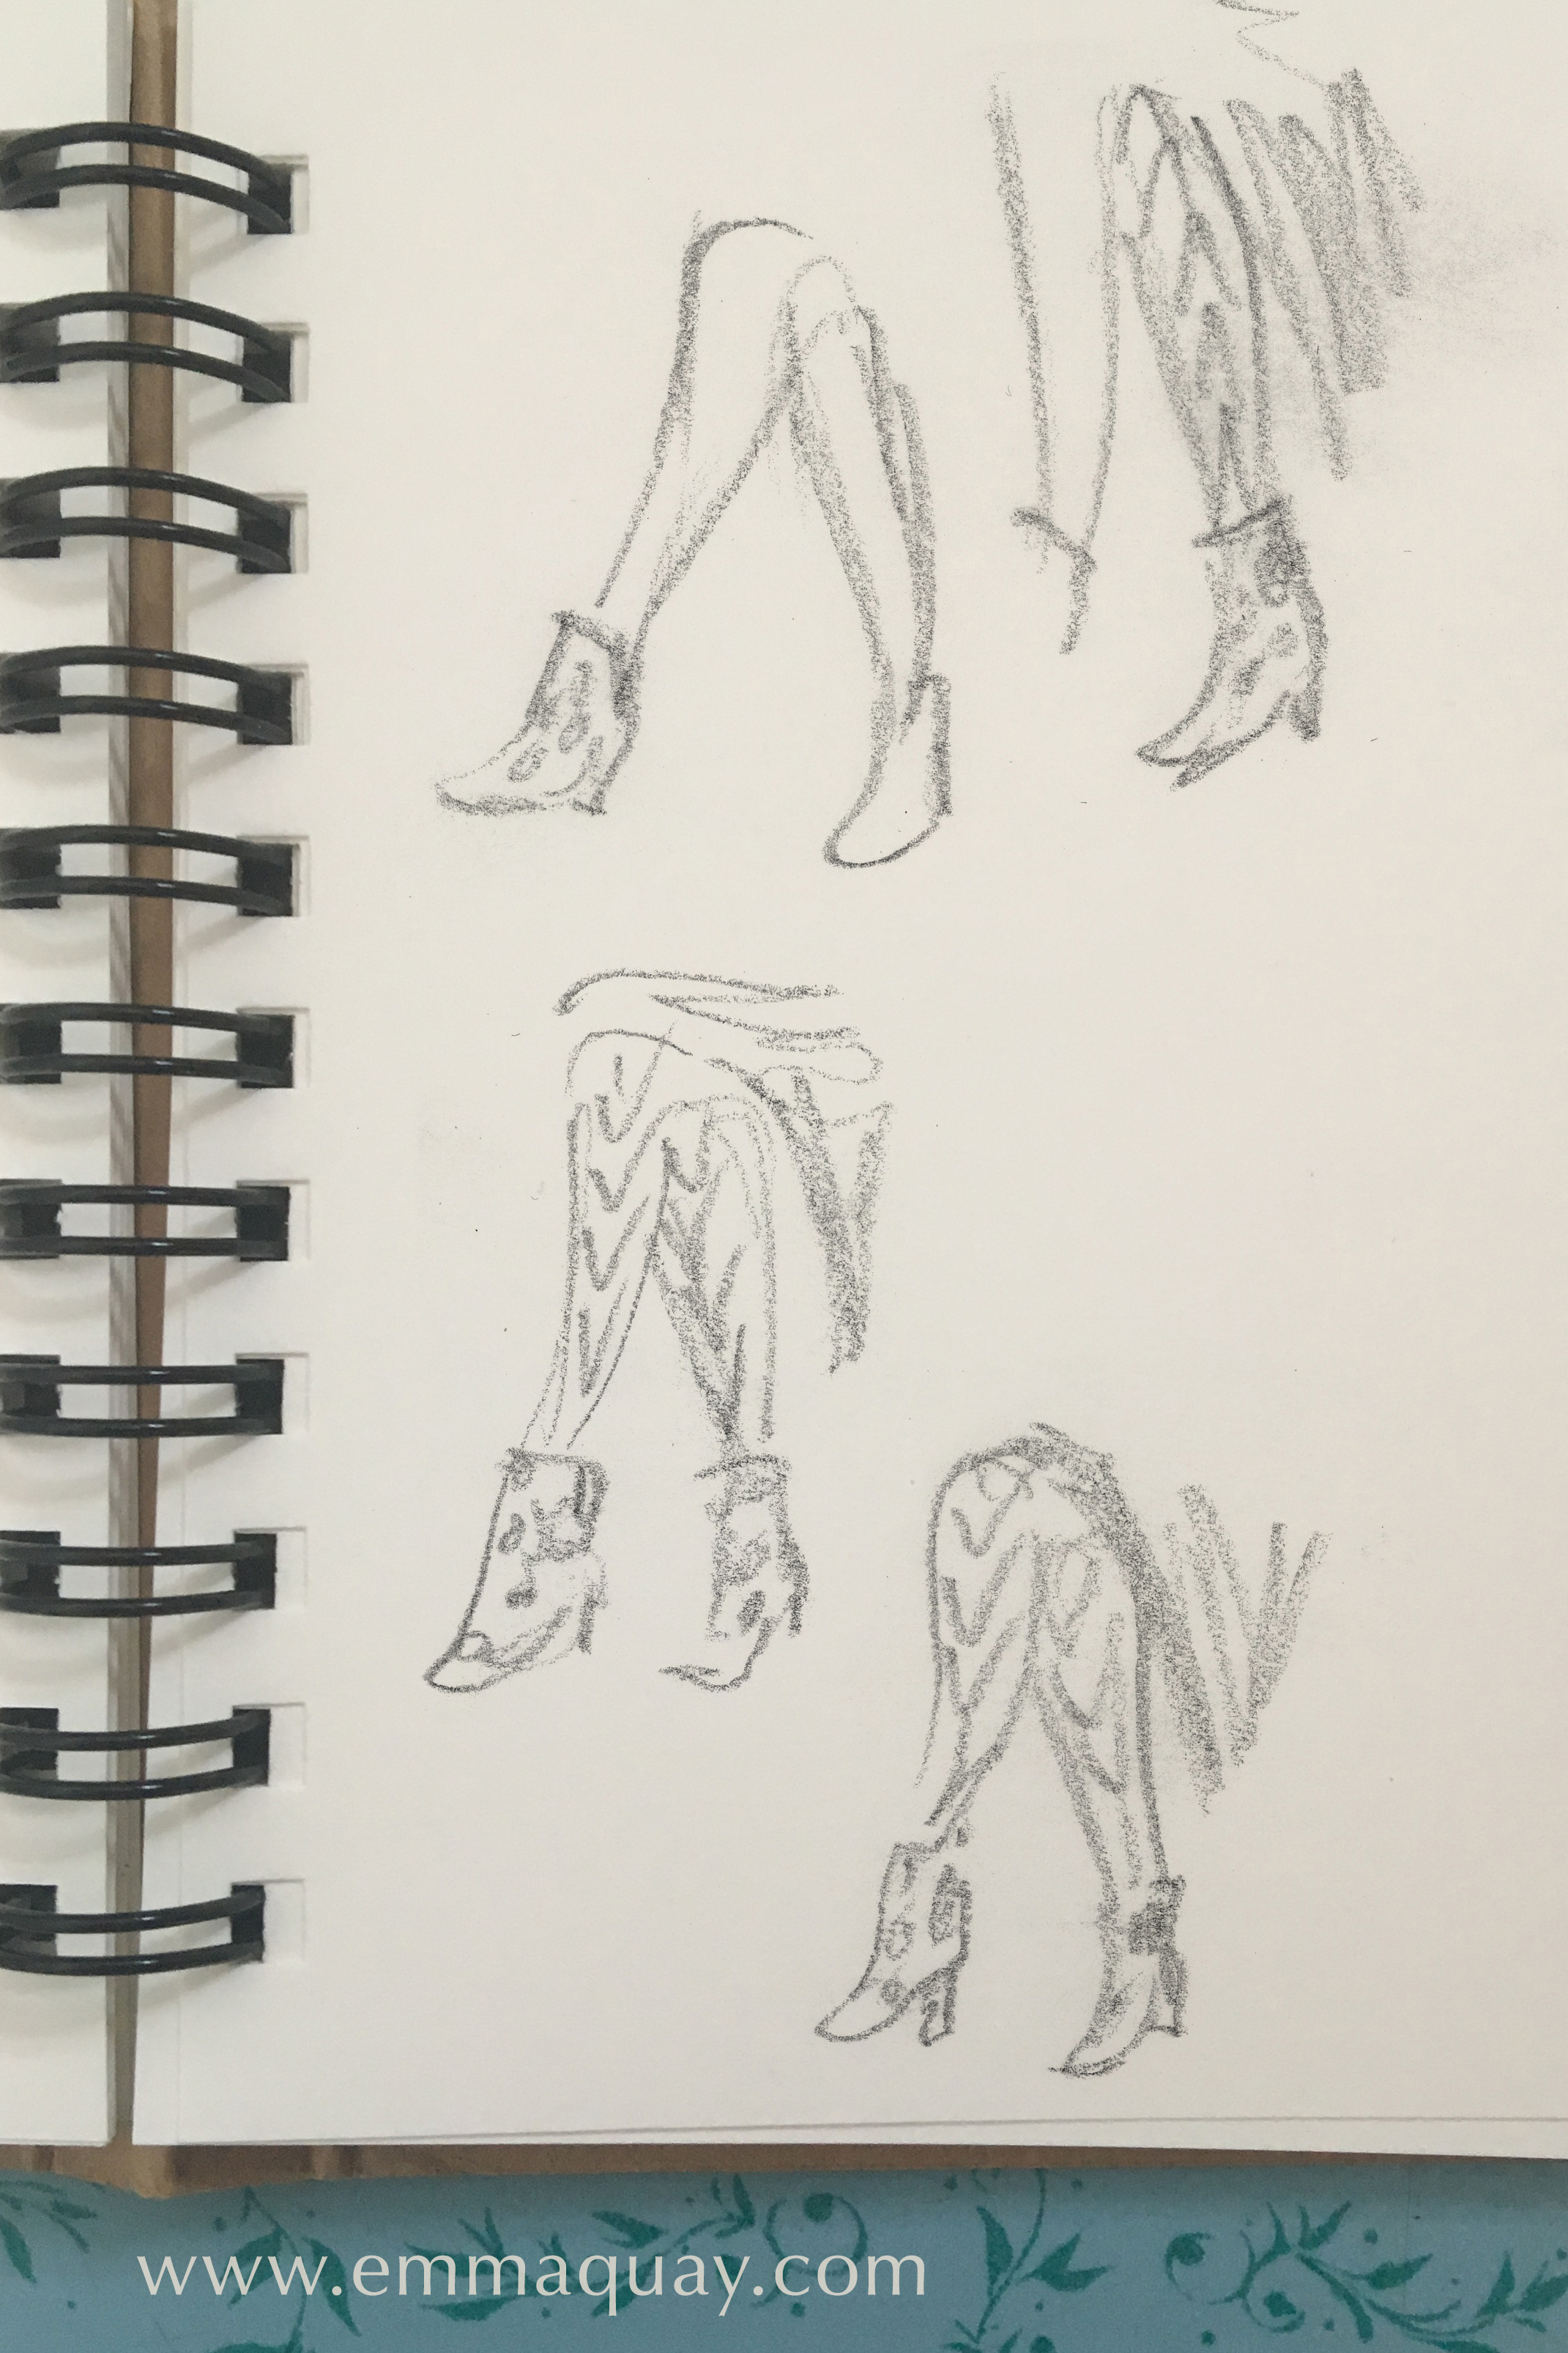 Rebecca Servadio's footwear, drawn at the VIPs Industry Forum #emmaquaysketchbook